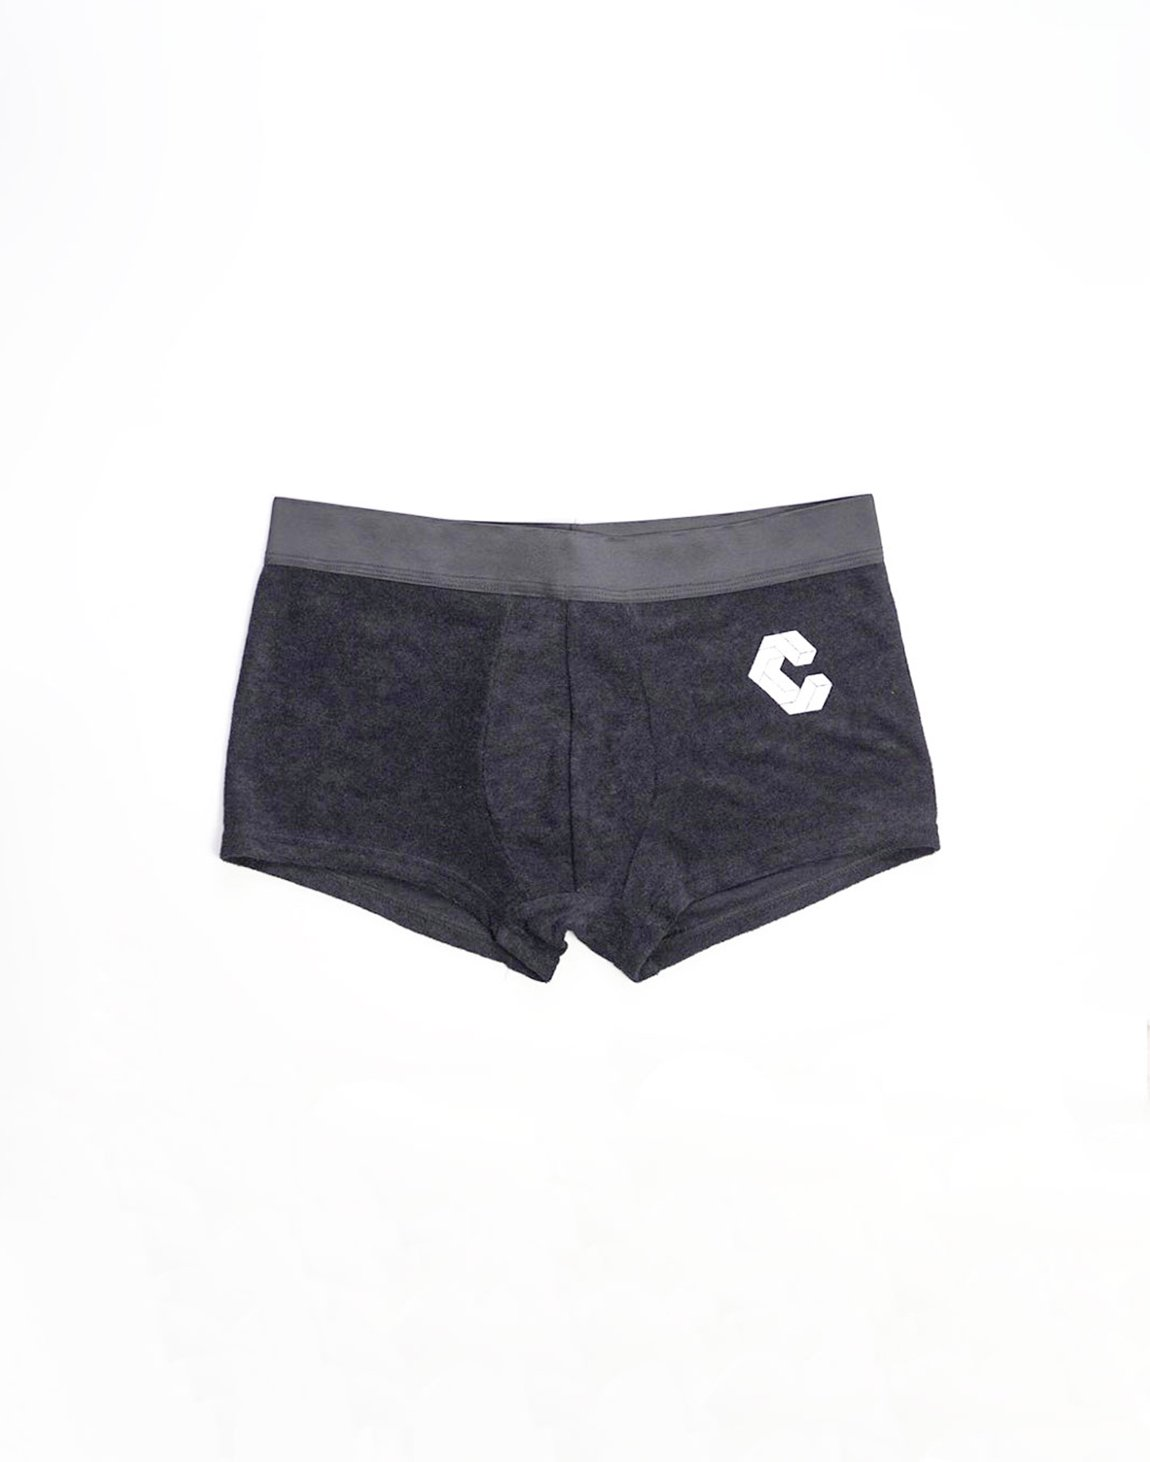 <img class='new_mark_img1' src='https://img.shop-pro.jp/img/new/icons1.gif' style='border:none;display:inline;margin:0px;padding:0px;width:auto;' />LOGO BOXER PANTS 01 BLACK